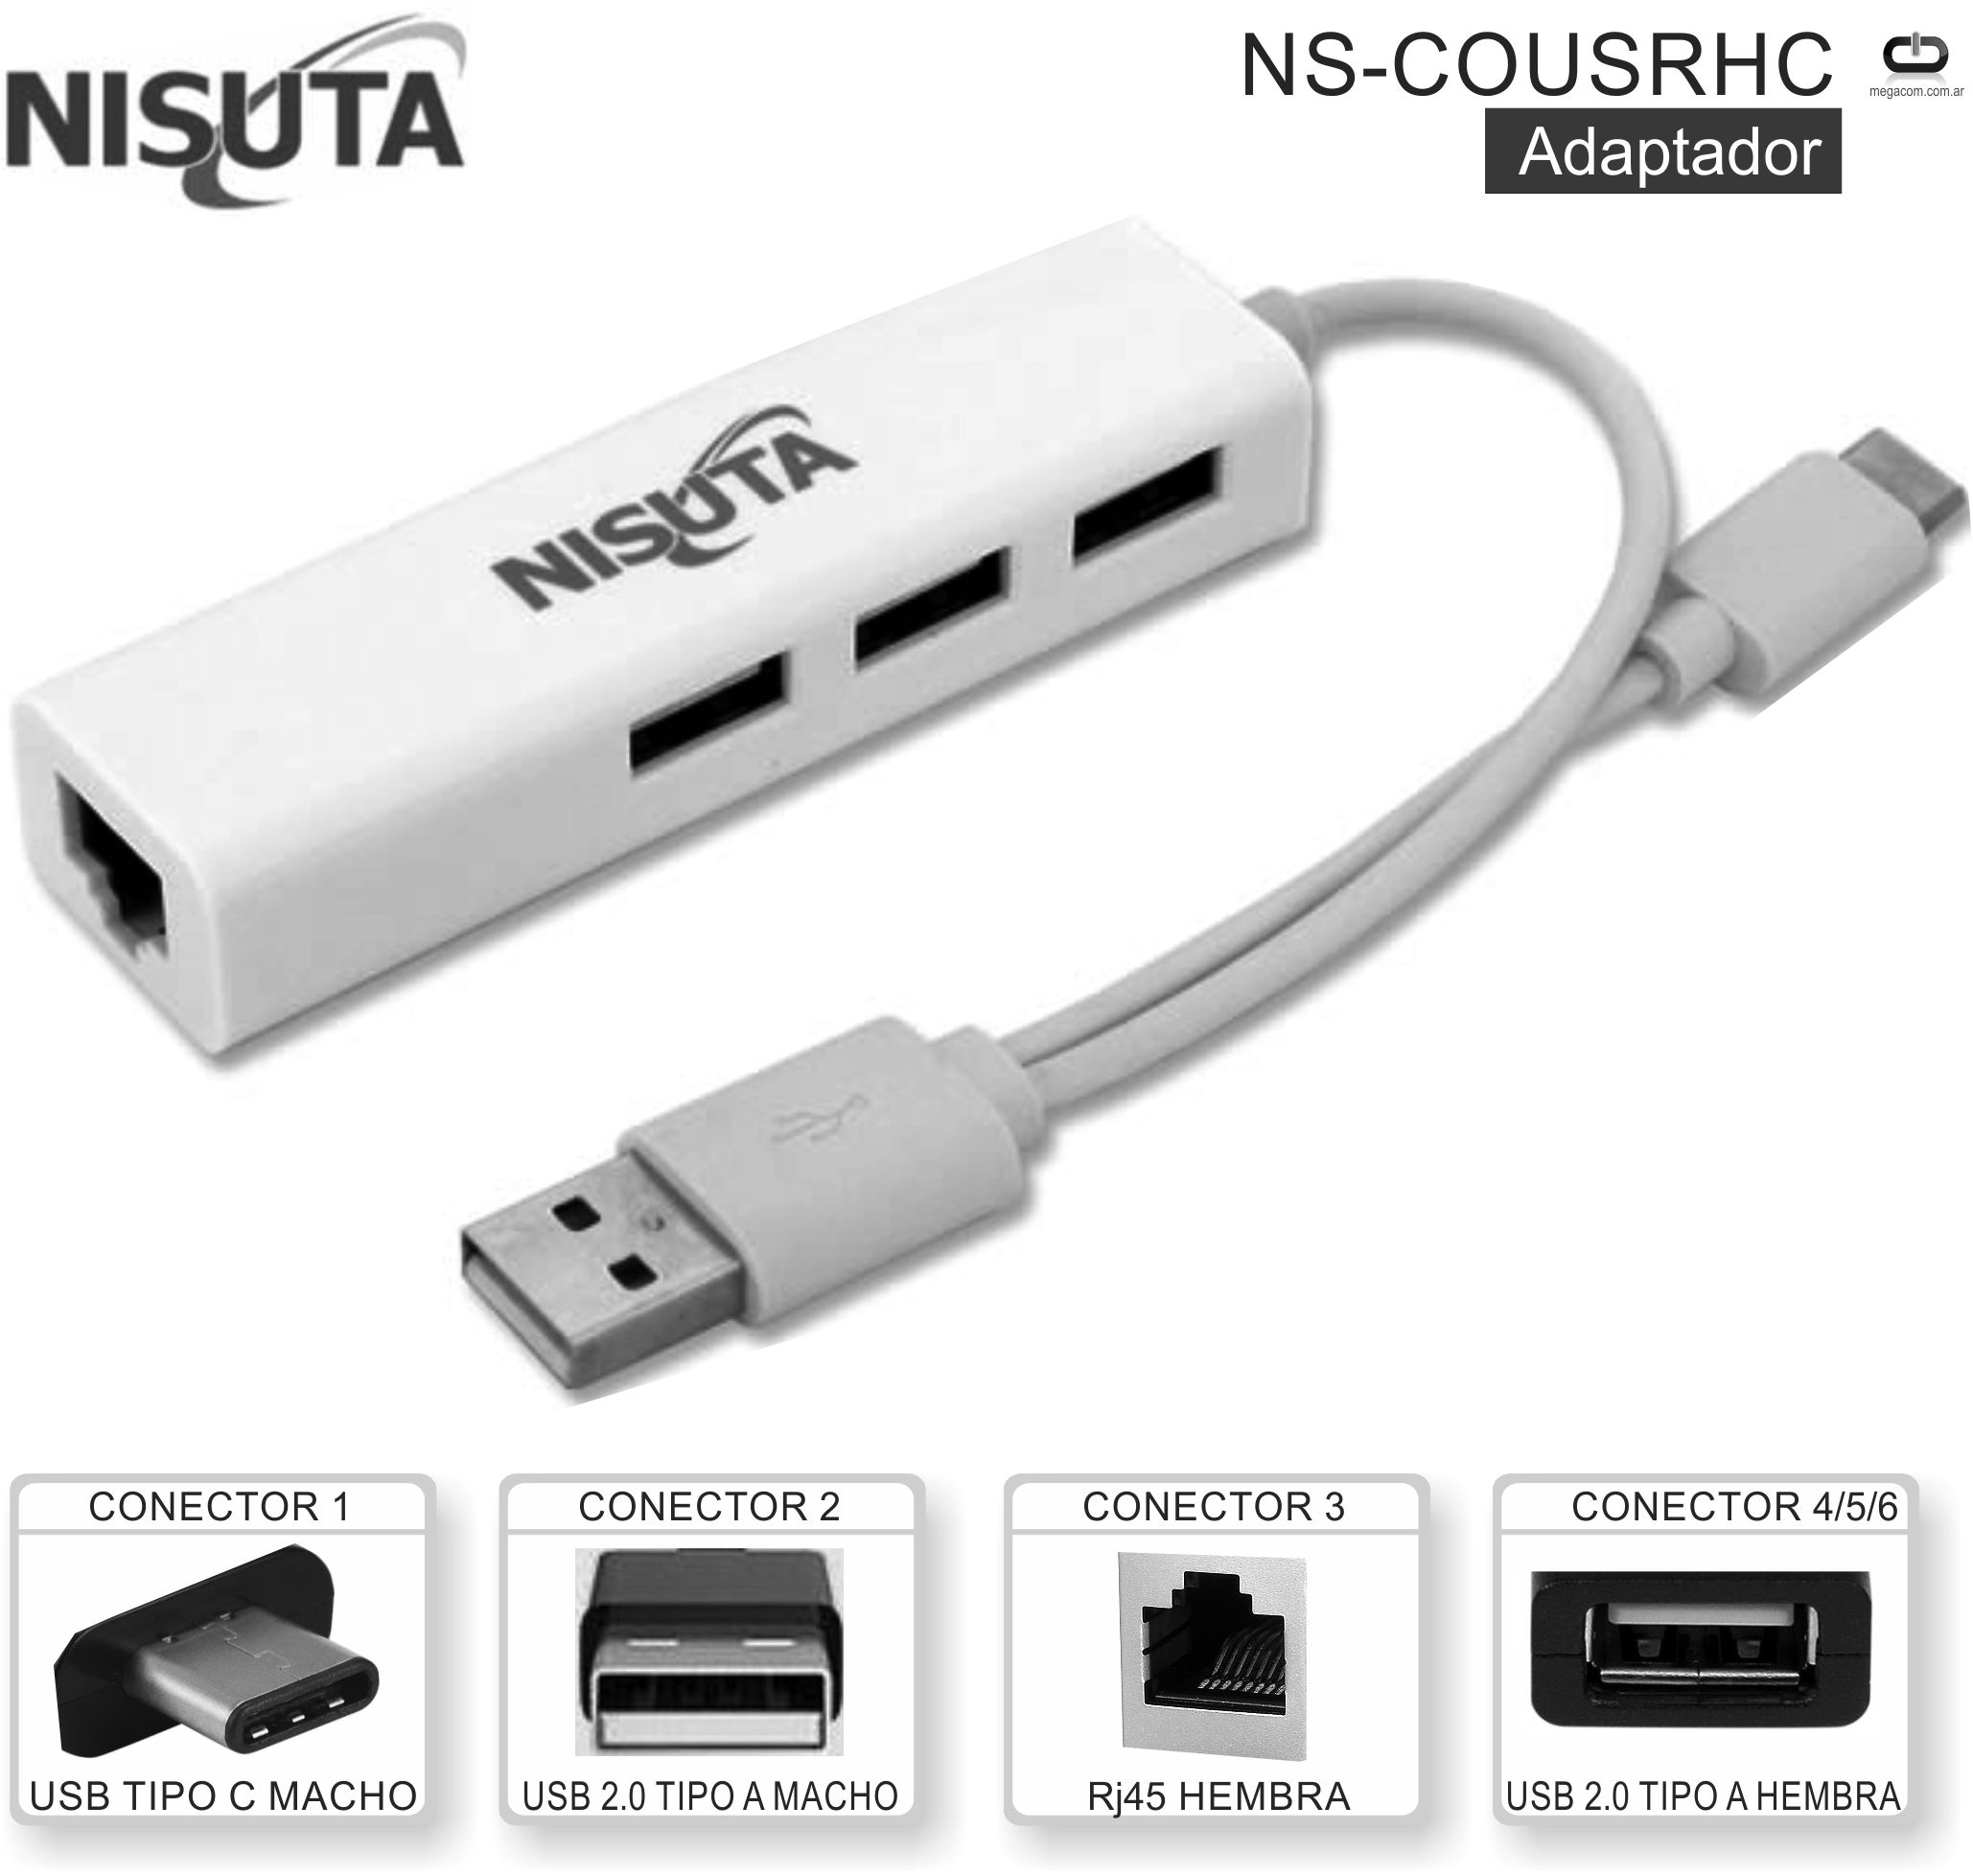 Adaptador USB C M - RED NISUTA NS-COUSRHC